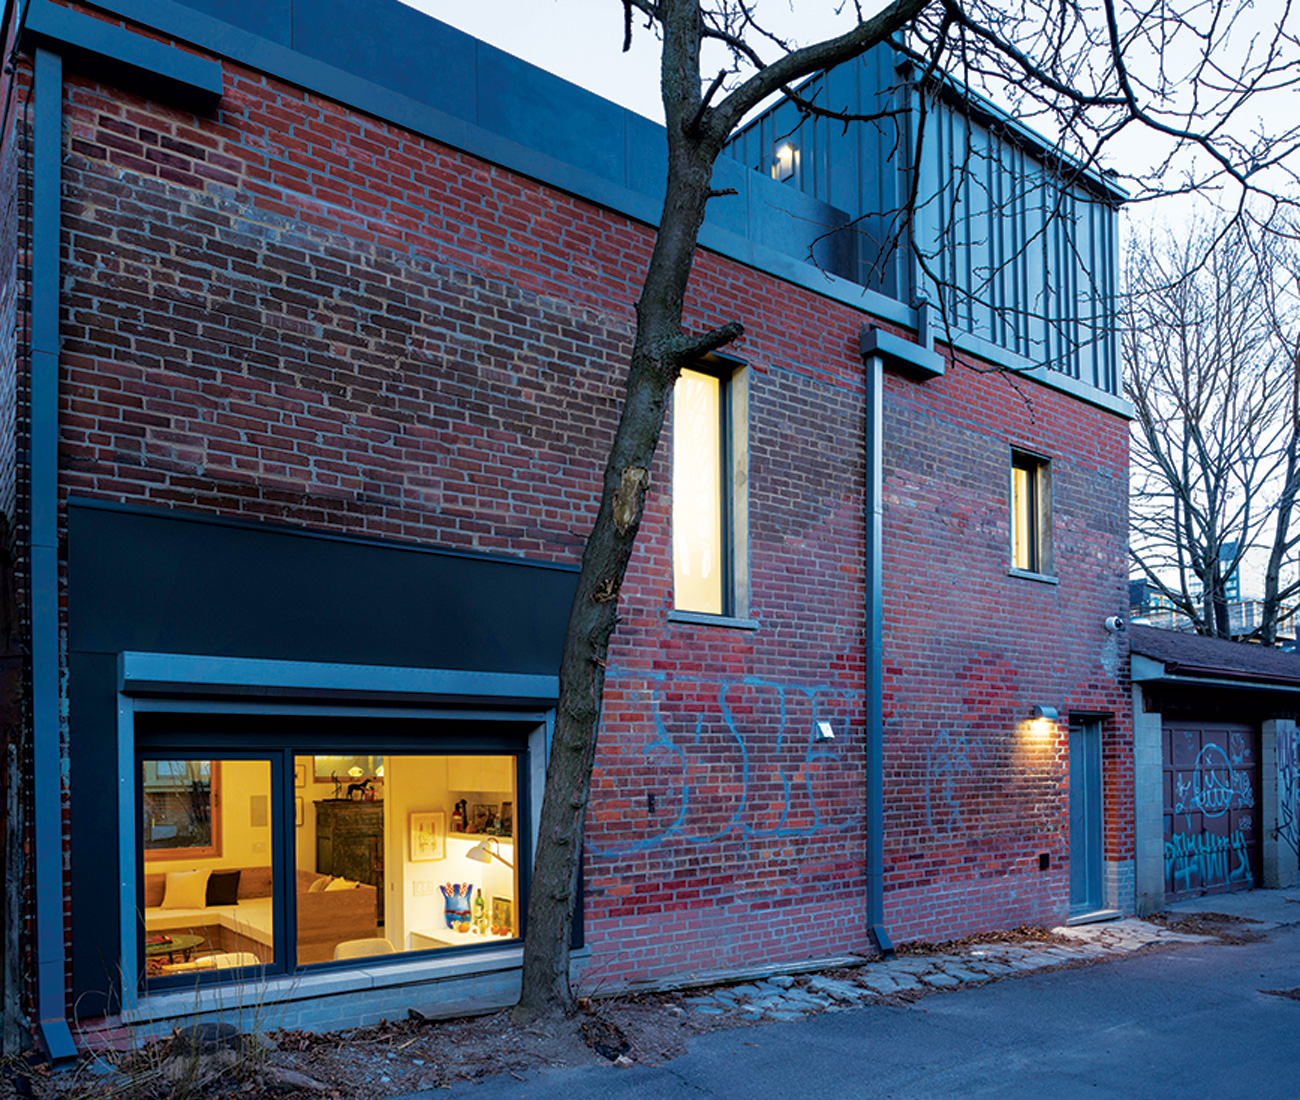 Original brick was reused to rebuild the structure, which is now topped with zinc roof flashing and eaves. A Nice For You shutter secures the office window at the push of a button.